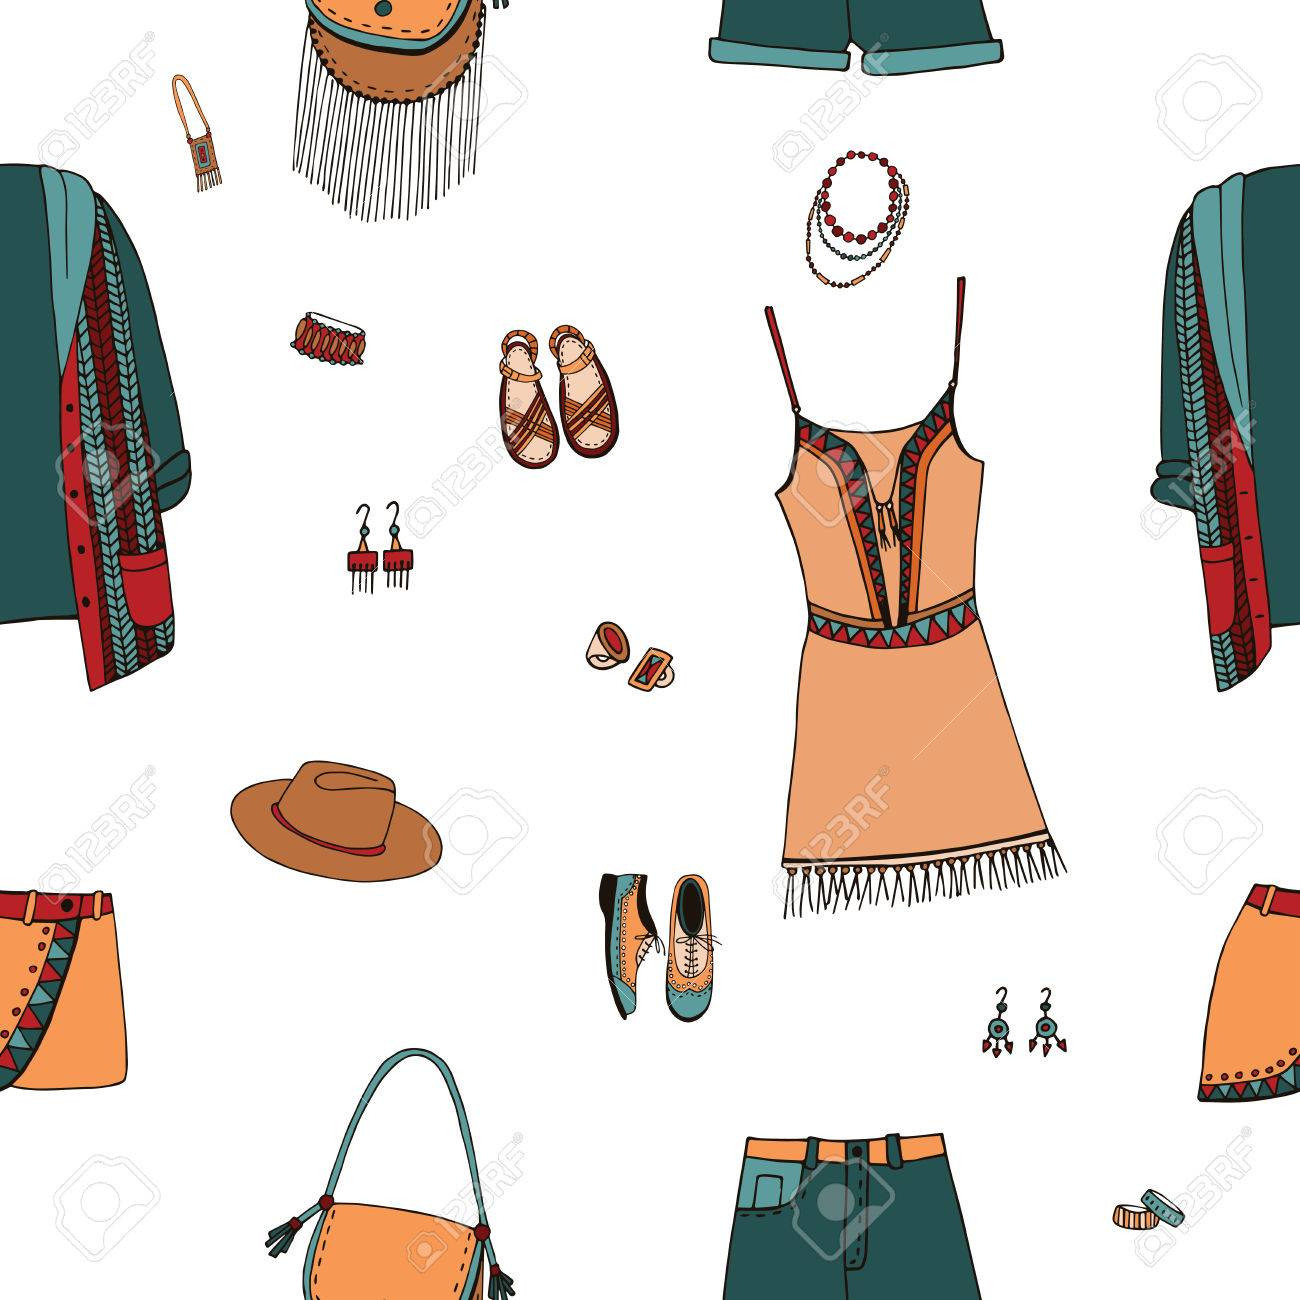 2905239f79 Bohemian Fashion Style Seamless Pattern. Boho And Gypsy Clothes ...